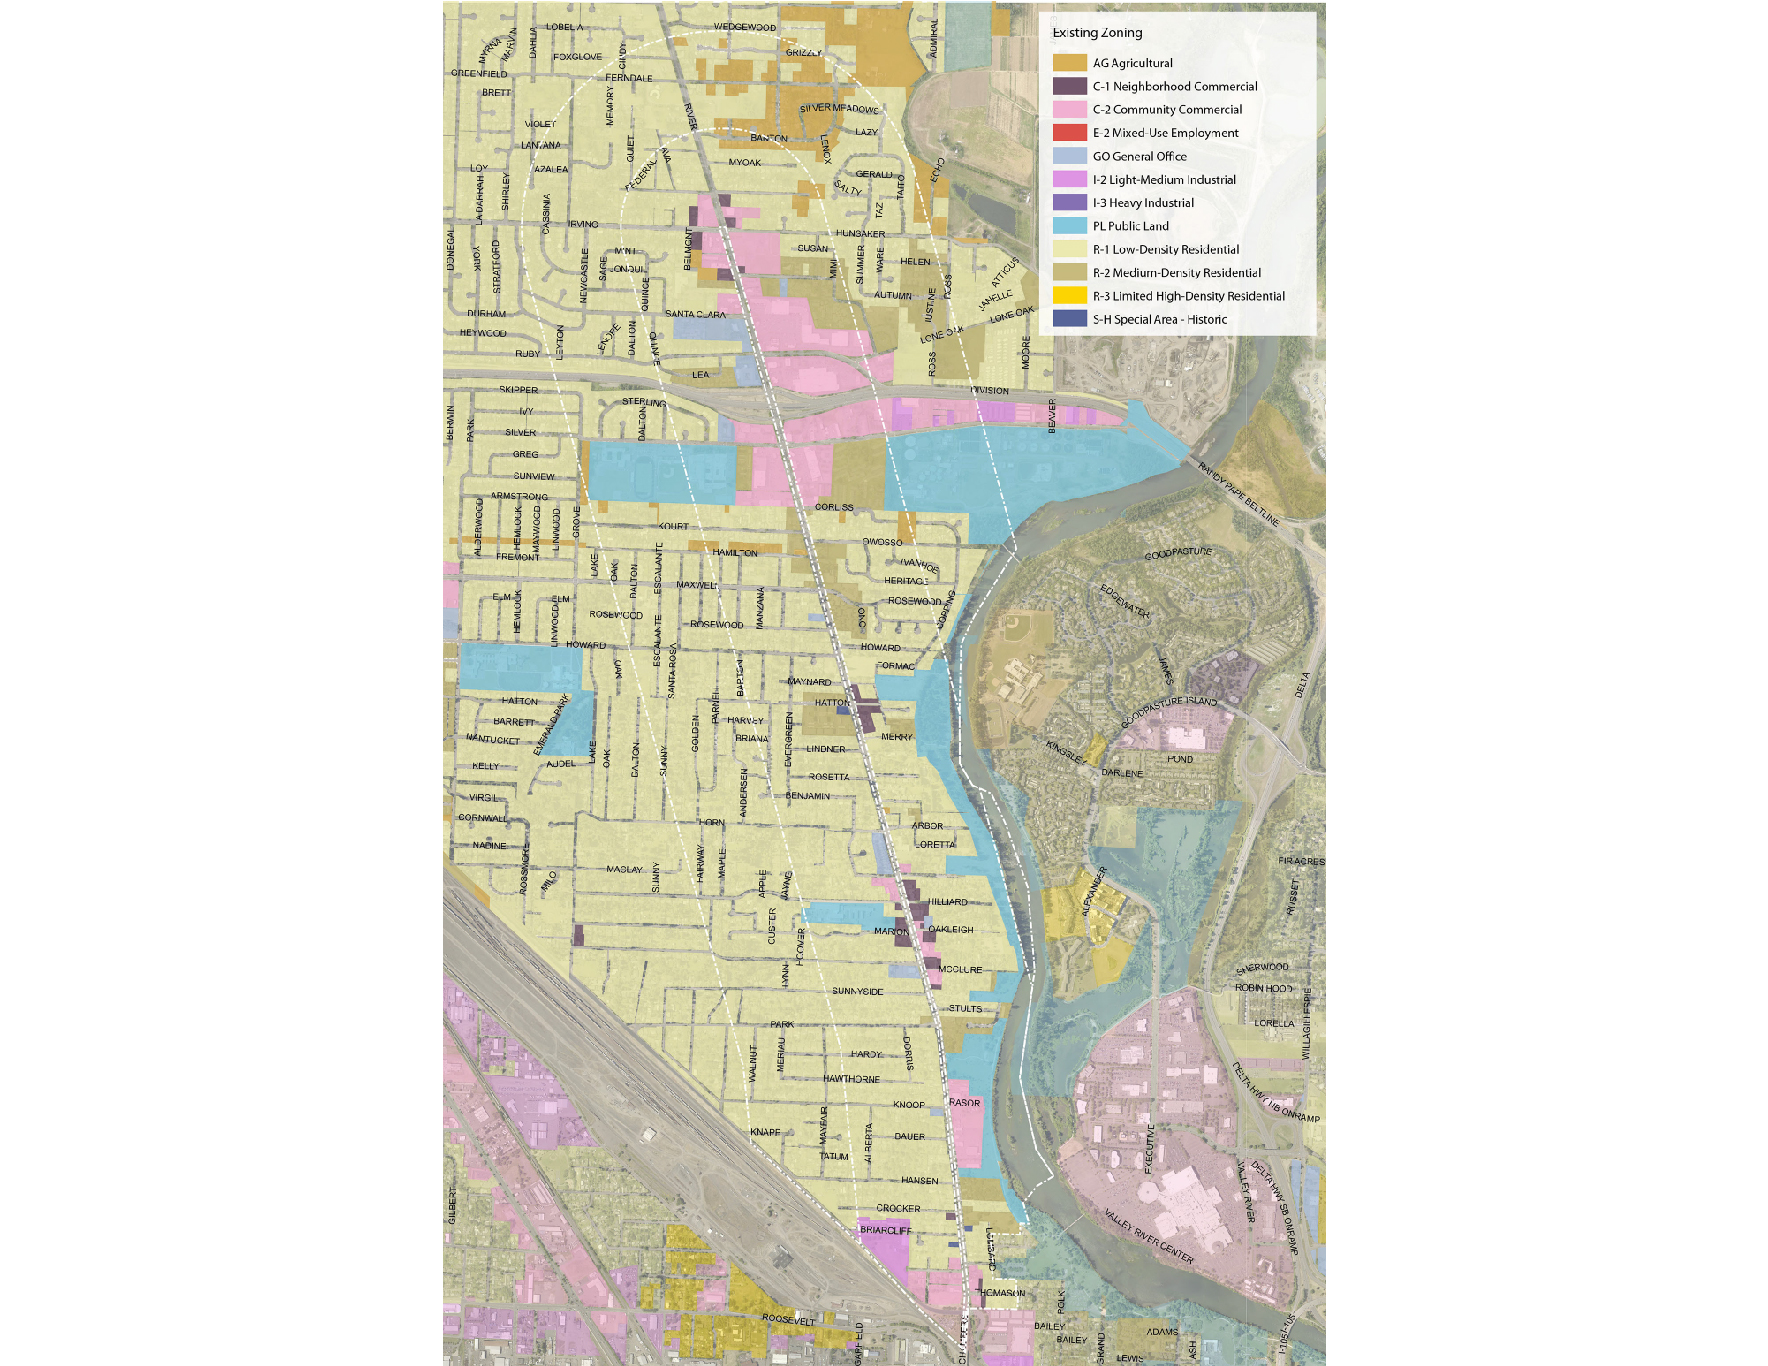 "<span style=""color: #36545f;""><strong>Current Zoning - Zoning Map</strong></span>"